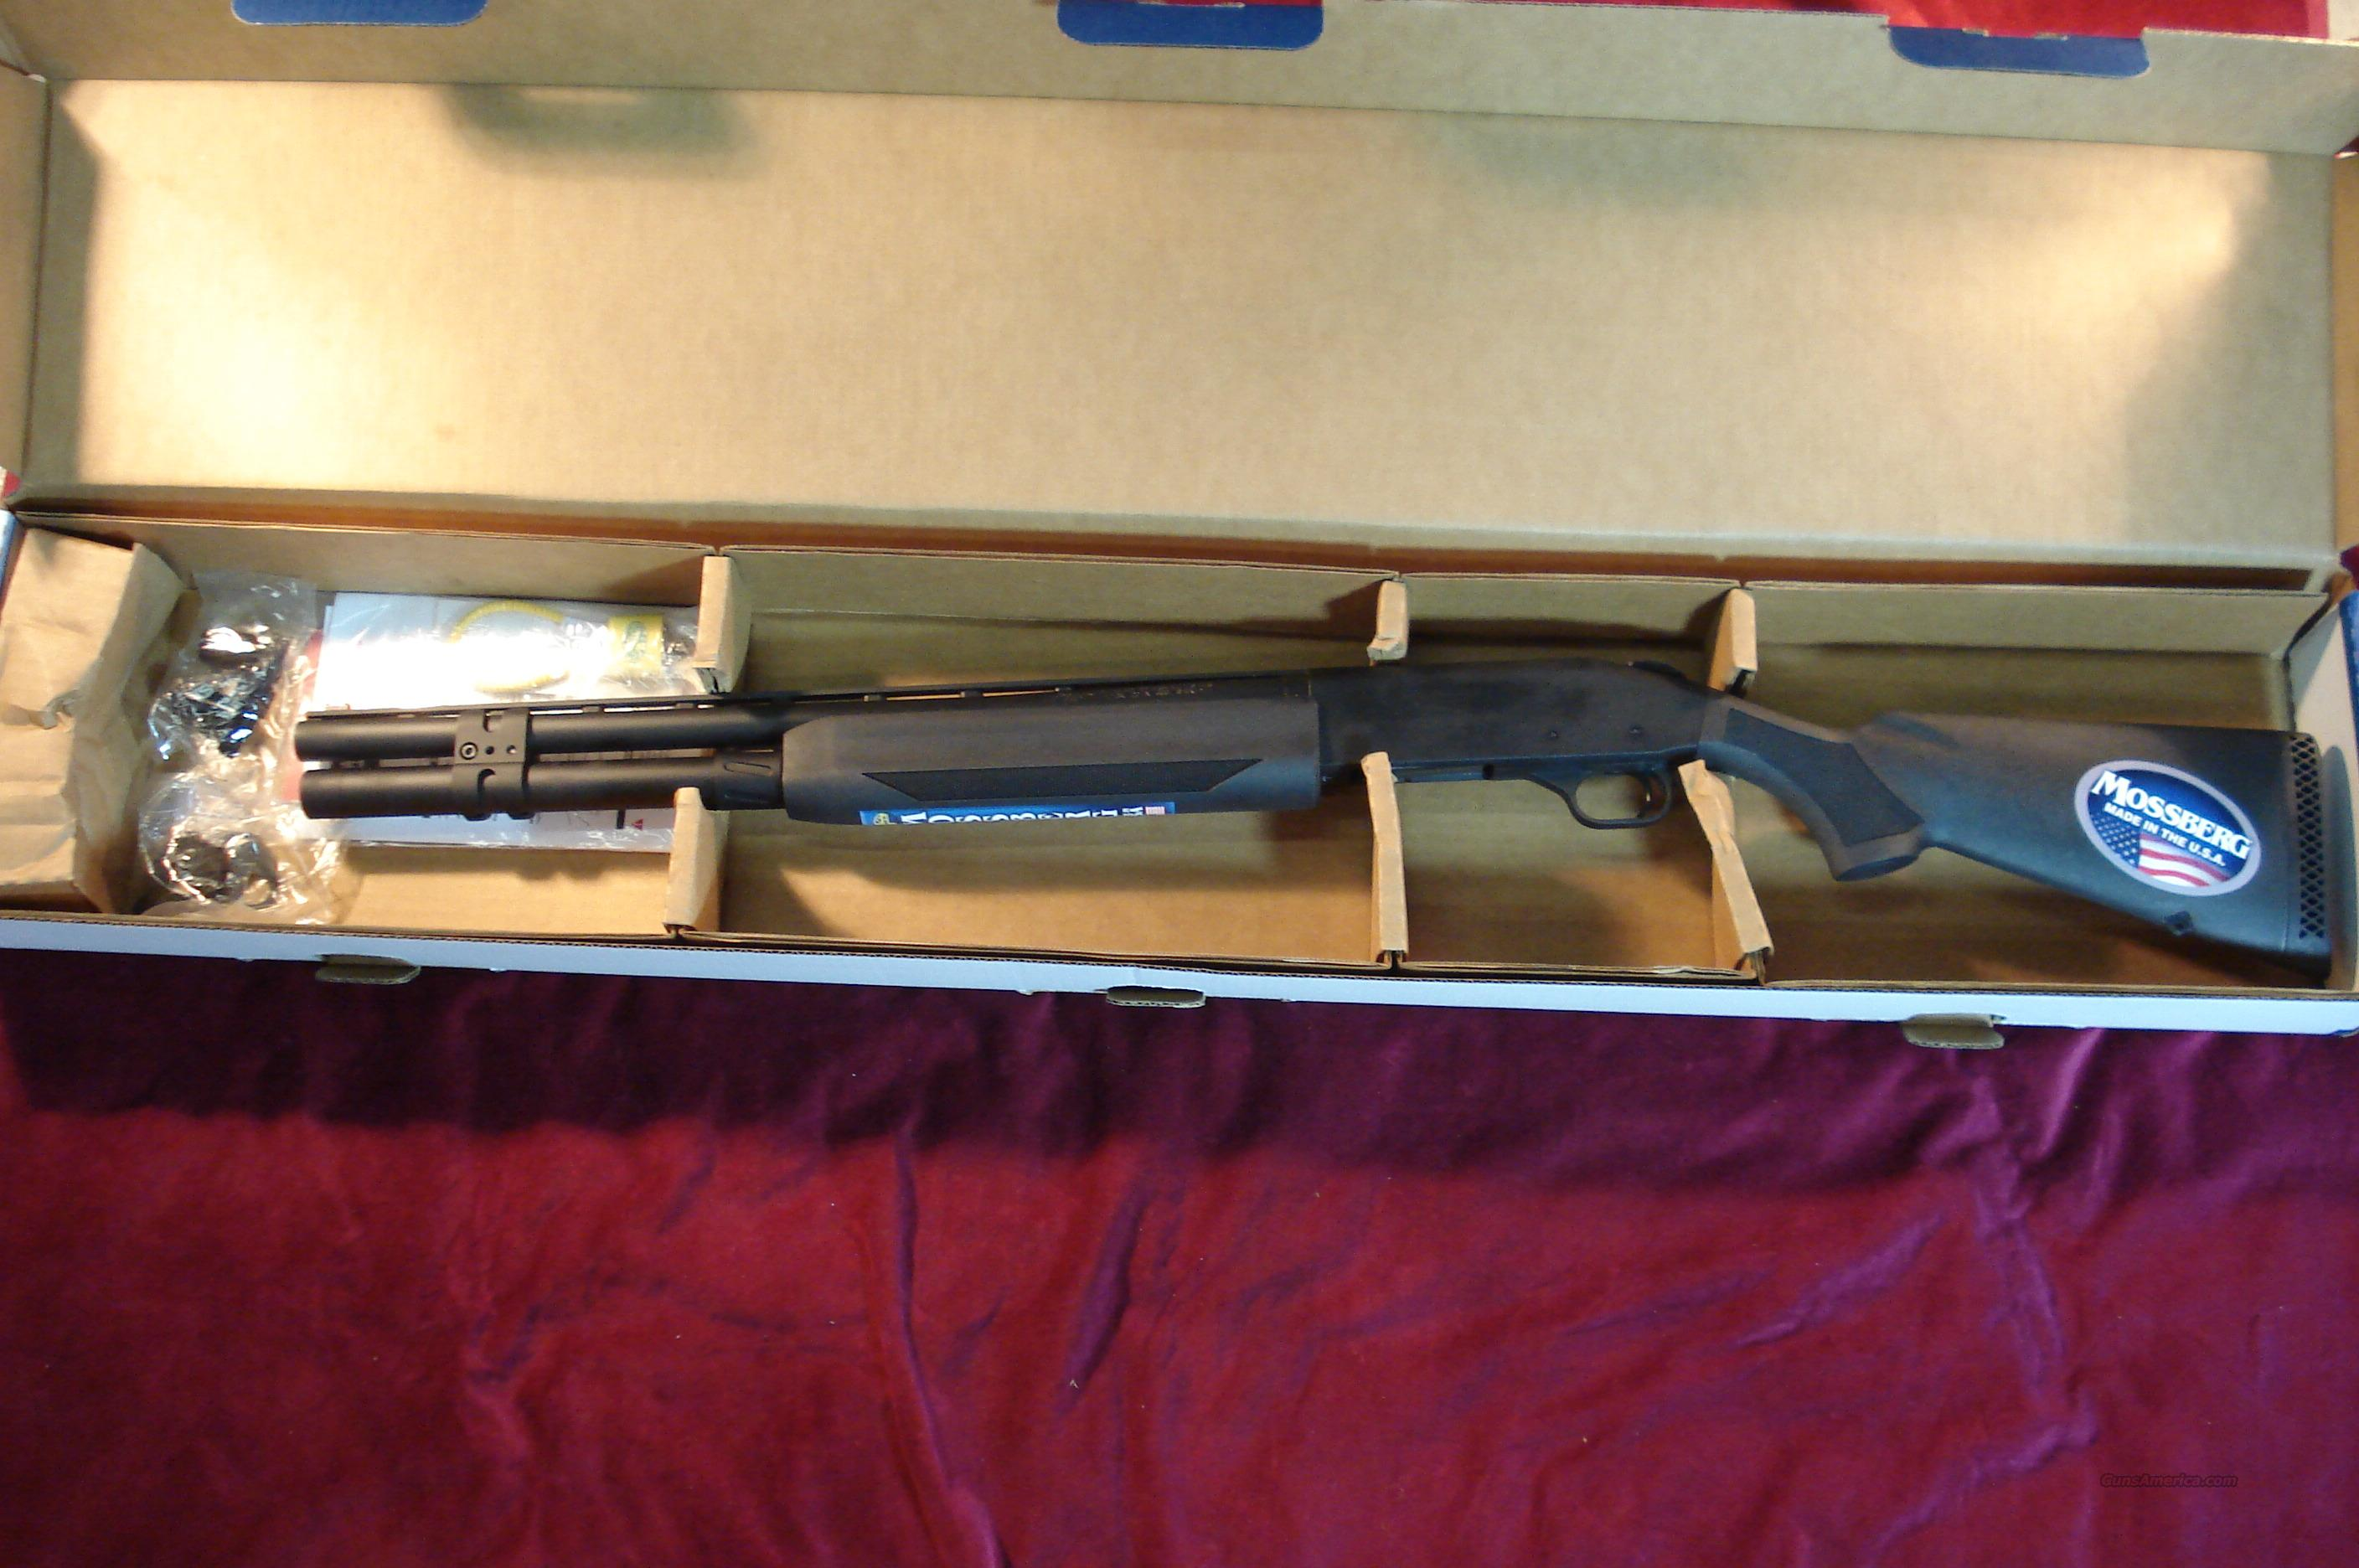 "MOSSBERG JERRY MICULEK PRO SERIES 12 GA SEMI AUTO 22"" BARREL 3"" CHAMBER NEW  Guns > Shotguns > Mossberg Shotguns > Autoloaders"